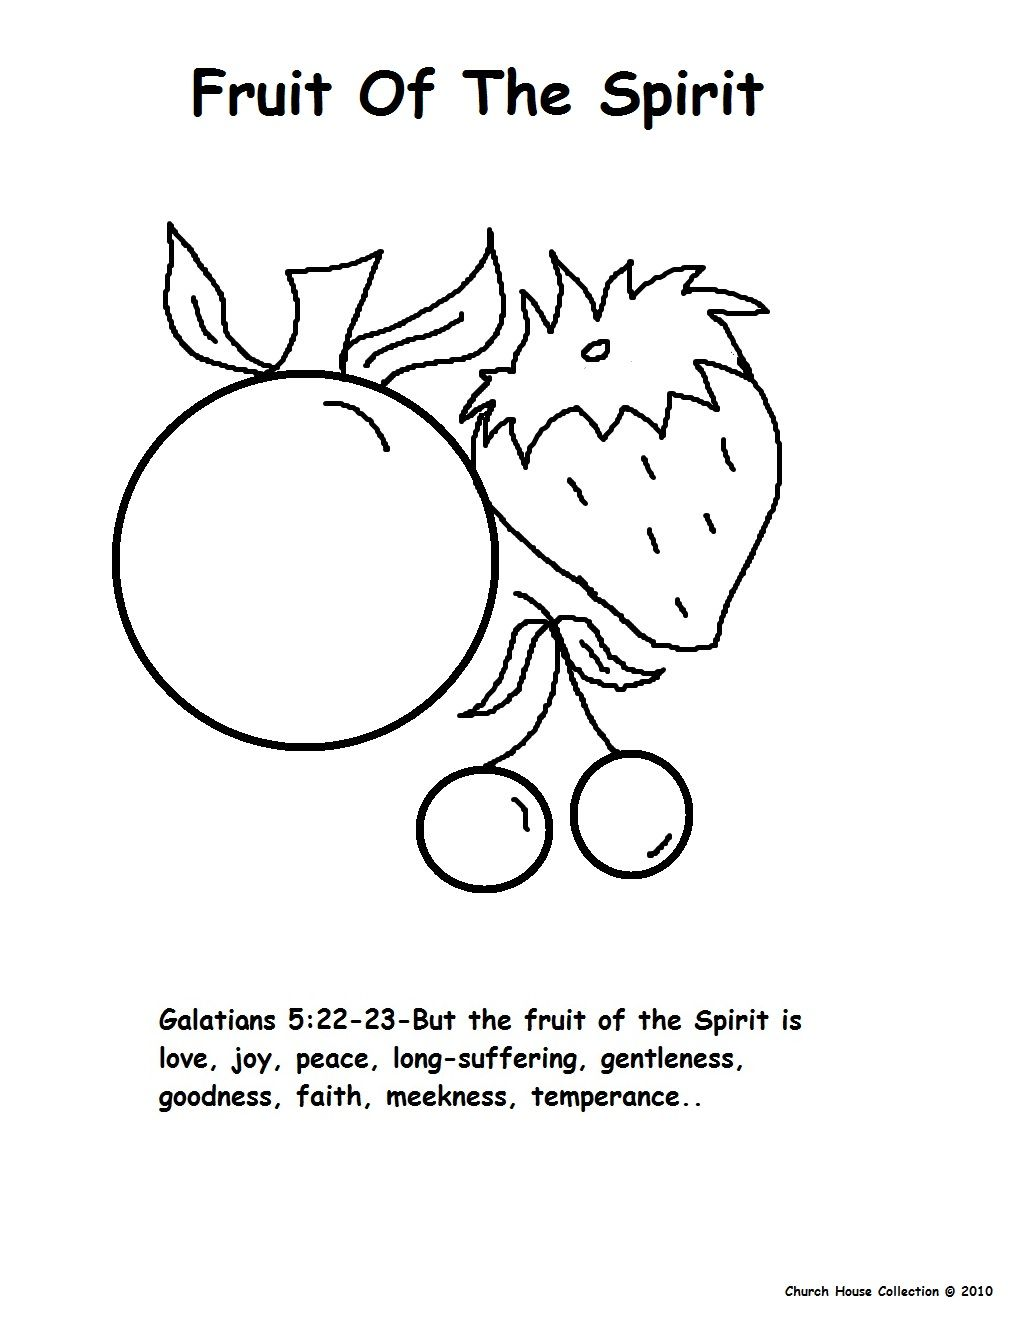 Fruit Of The Spirit Coloring Pages Sunday School Coloring Pages Bible Coloring Pages Fruit Of The Spirit